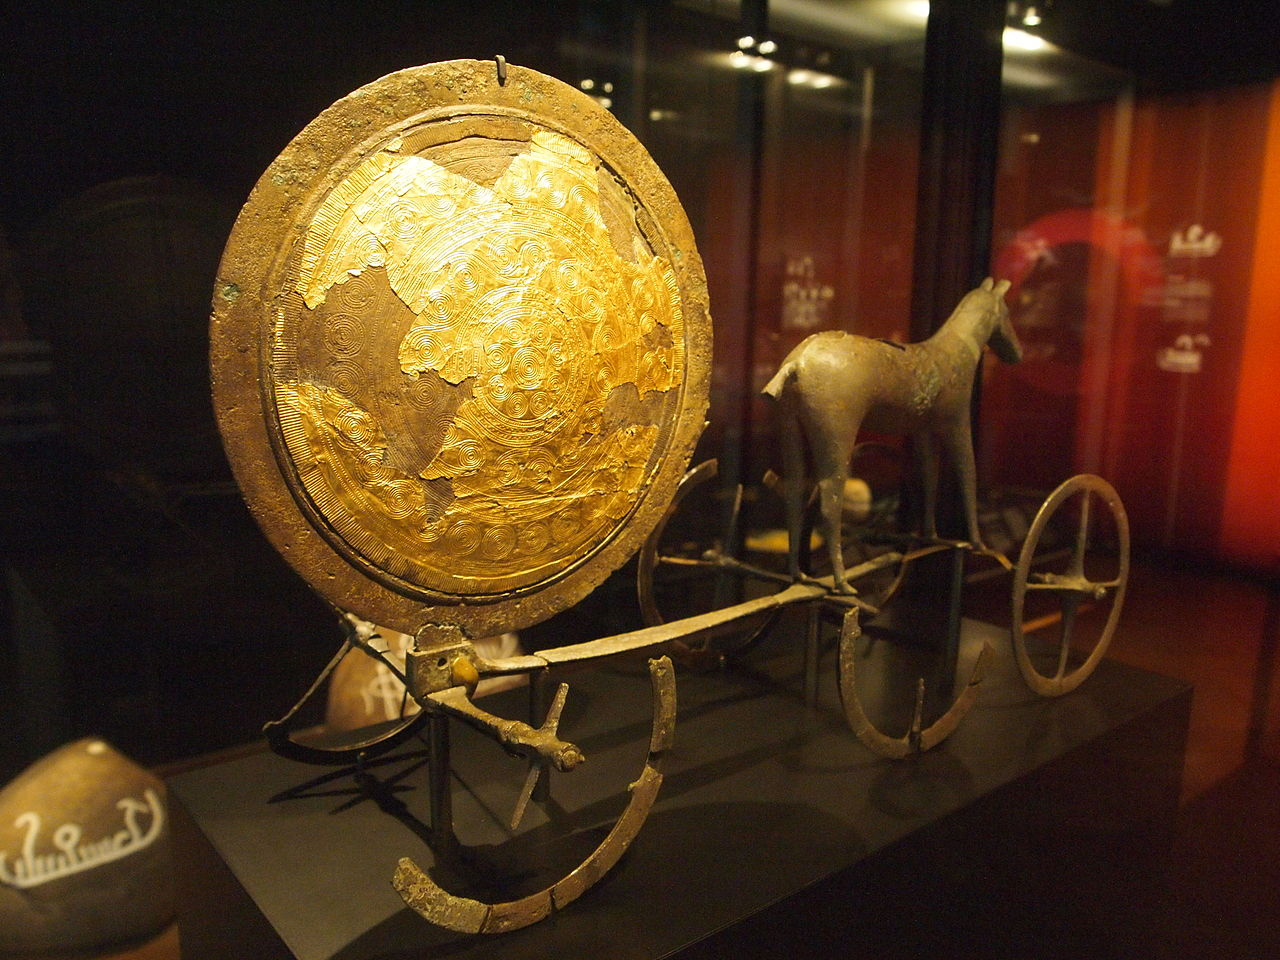 A photograph of the National Museum of Denmark's Bronze Age display, featuring the Trundholm Sun Chariot and various other Nordic Bronze Age items ( Photo:   Wikimedia Commons )